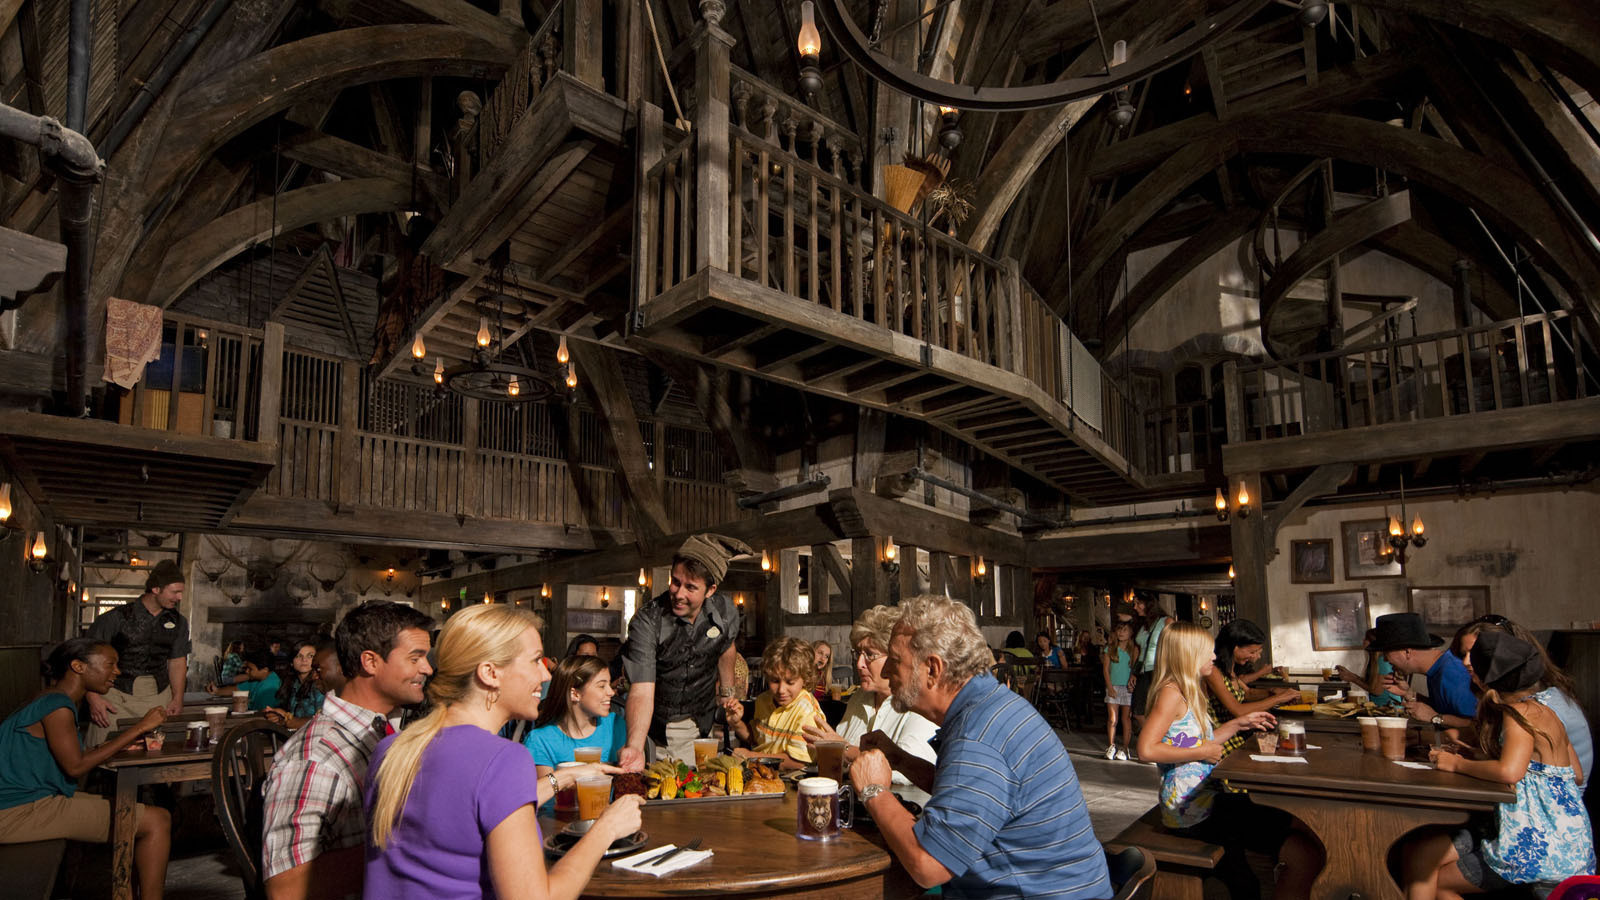 la-trb-wizarding-world-harry-potter-three-broomsticks-hogs-head-20160218